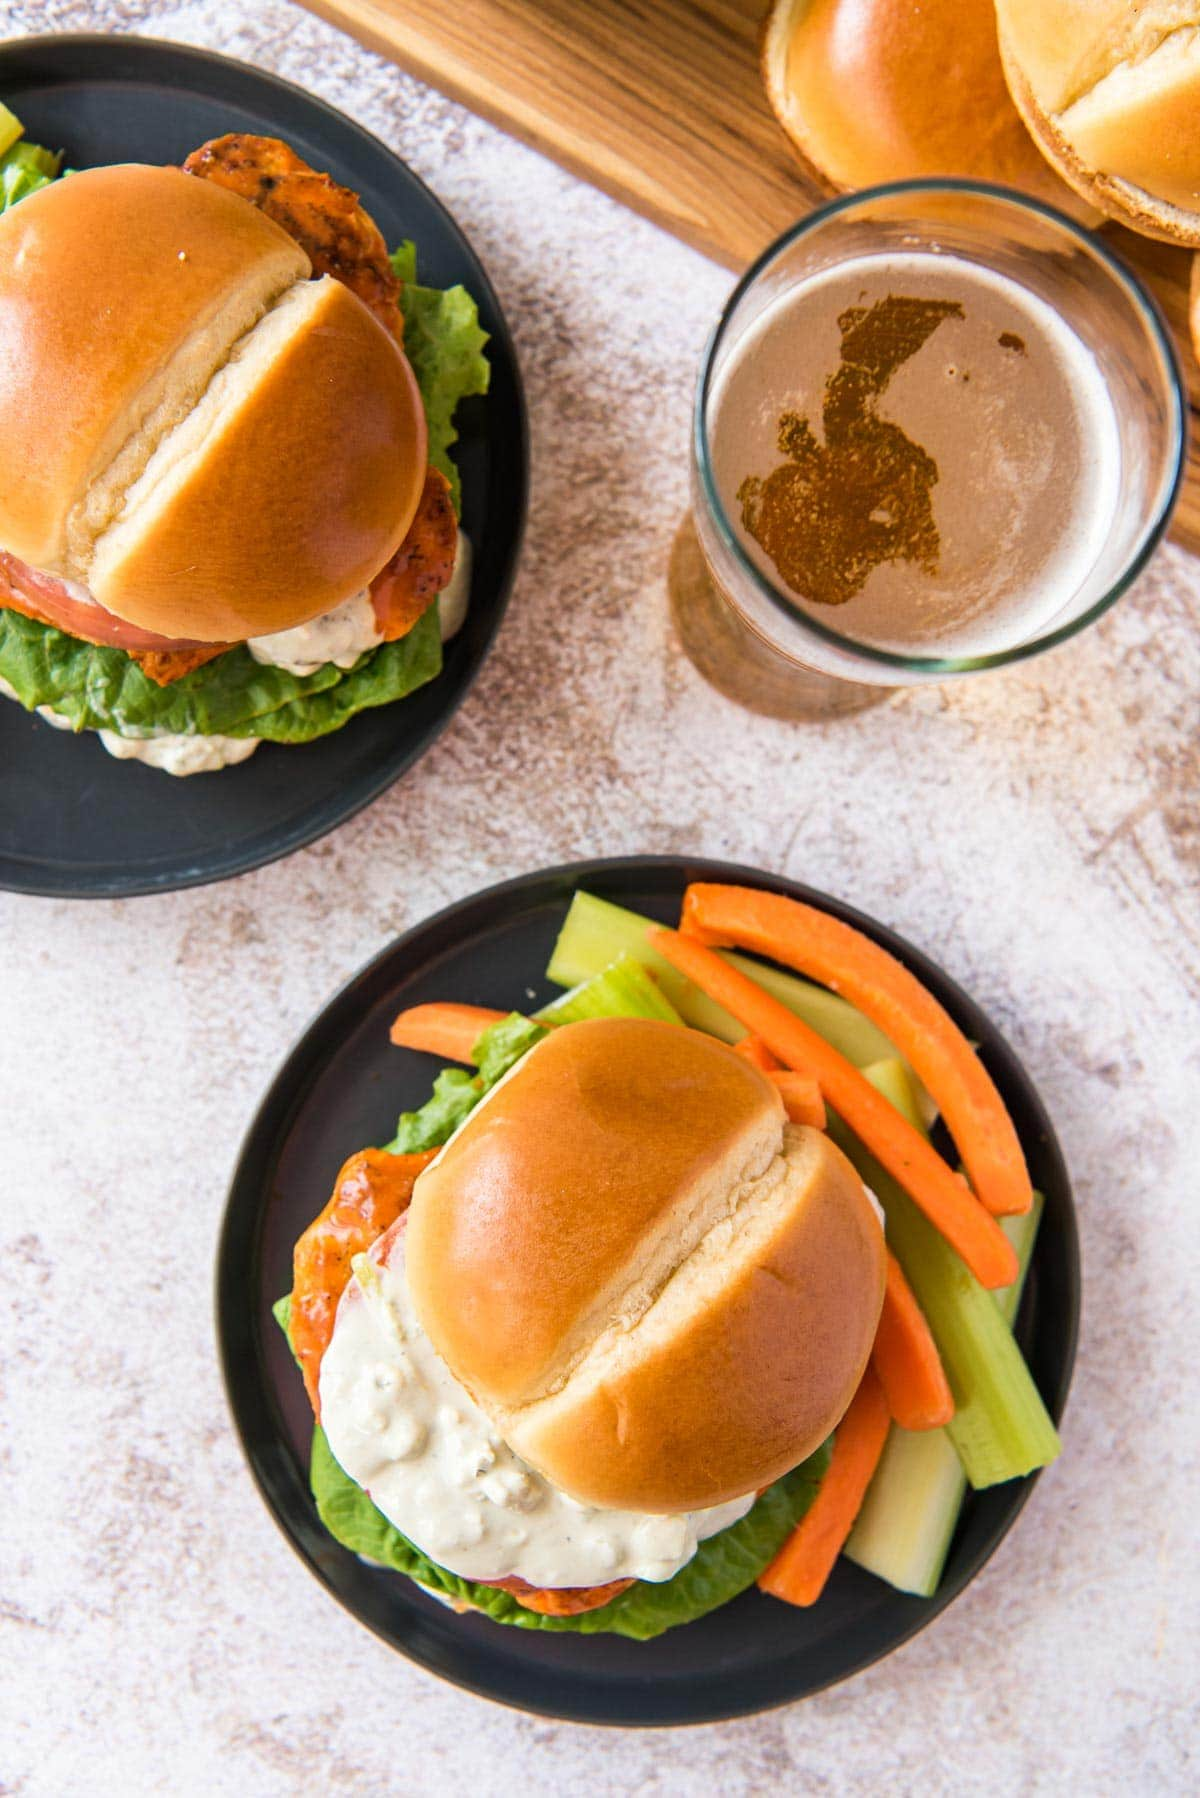 Overhead shot of 2 buffalo chicken sandwiches on black plates, a beer, brioche buns on a wood cutting board